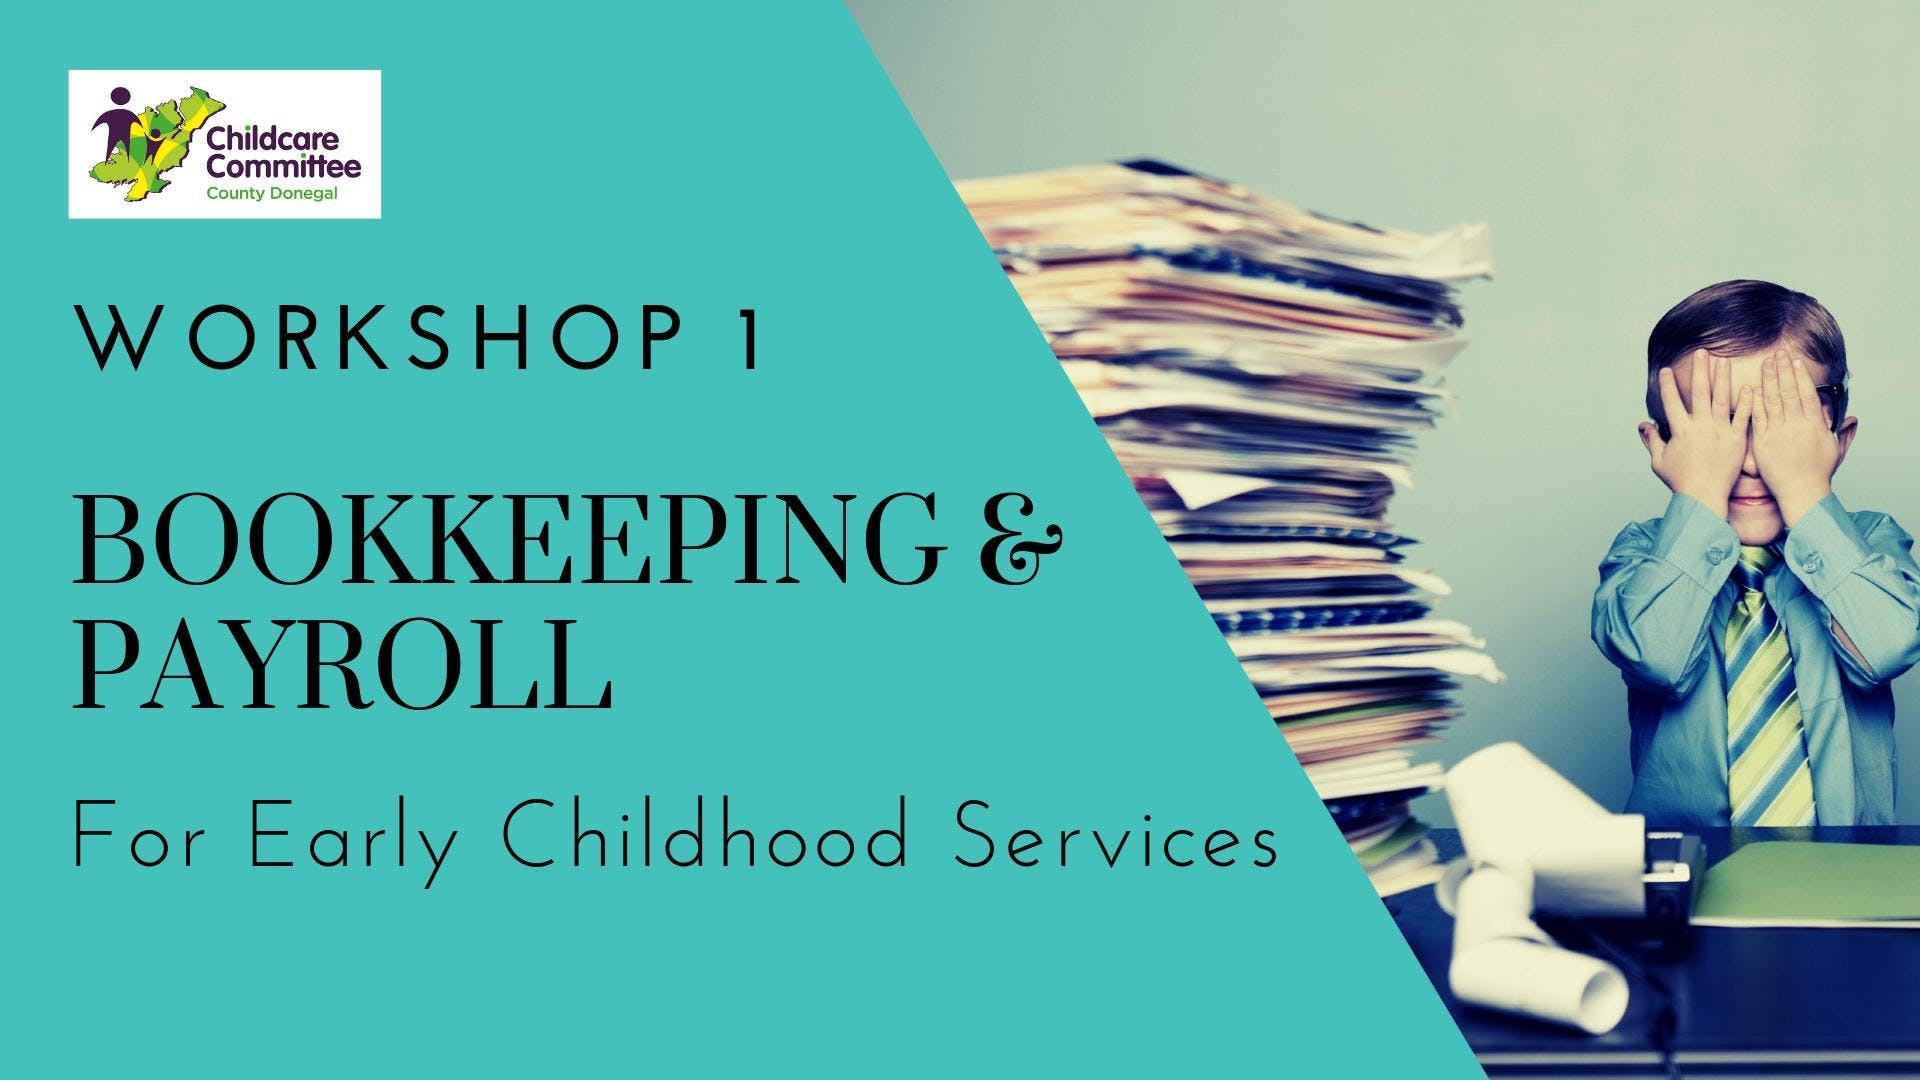 Bookkeeping and Payroll Workshop for Early Childhood Services